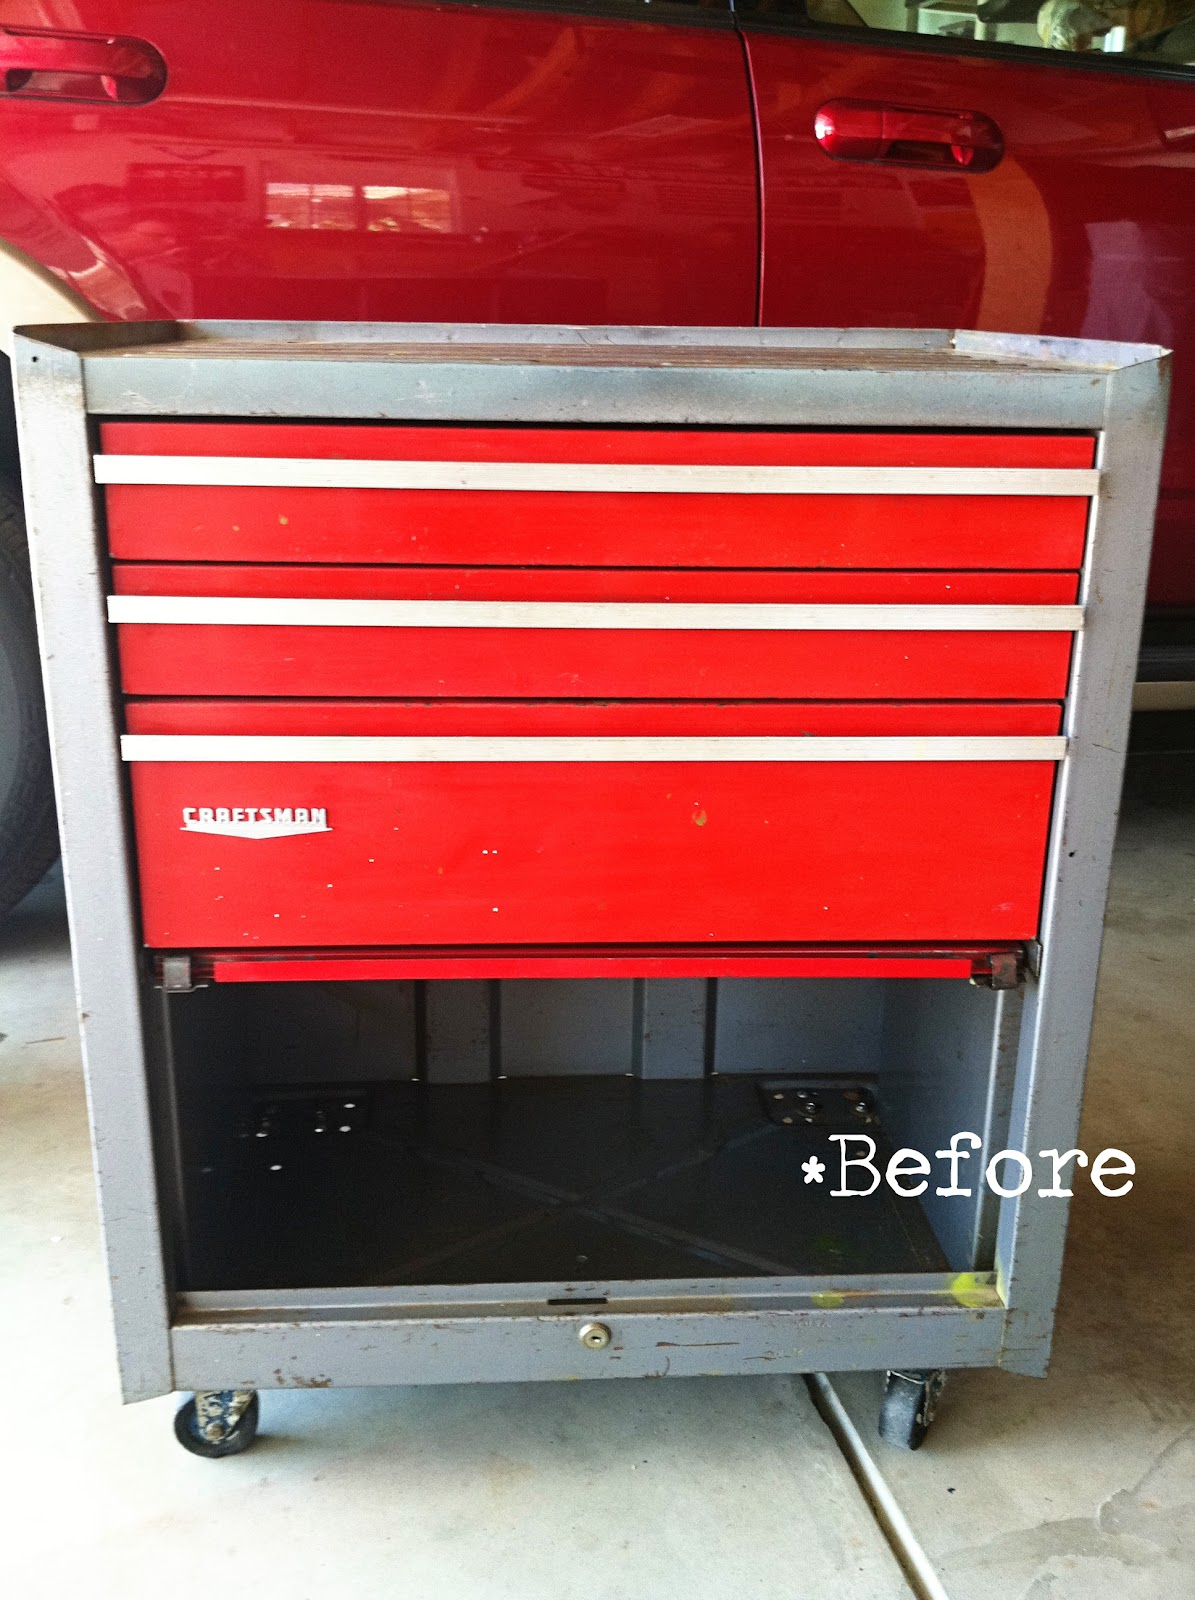 25 Best Ideas About Tool Box Dresser On Pinterest: Frankly Speaking Too: Upcycled (Refurbished) Bottom Box